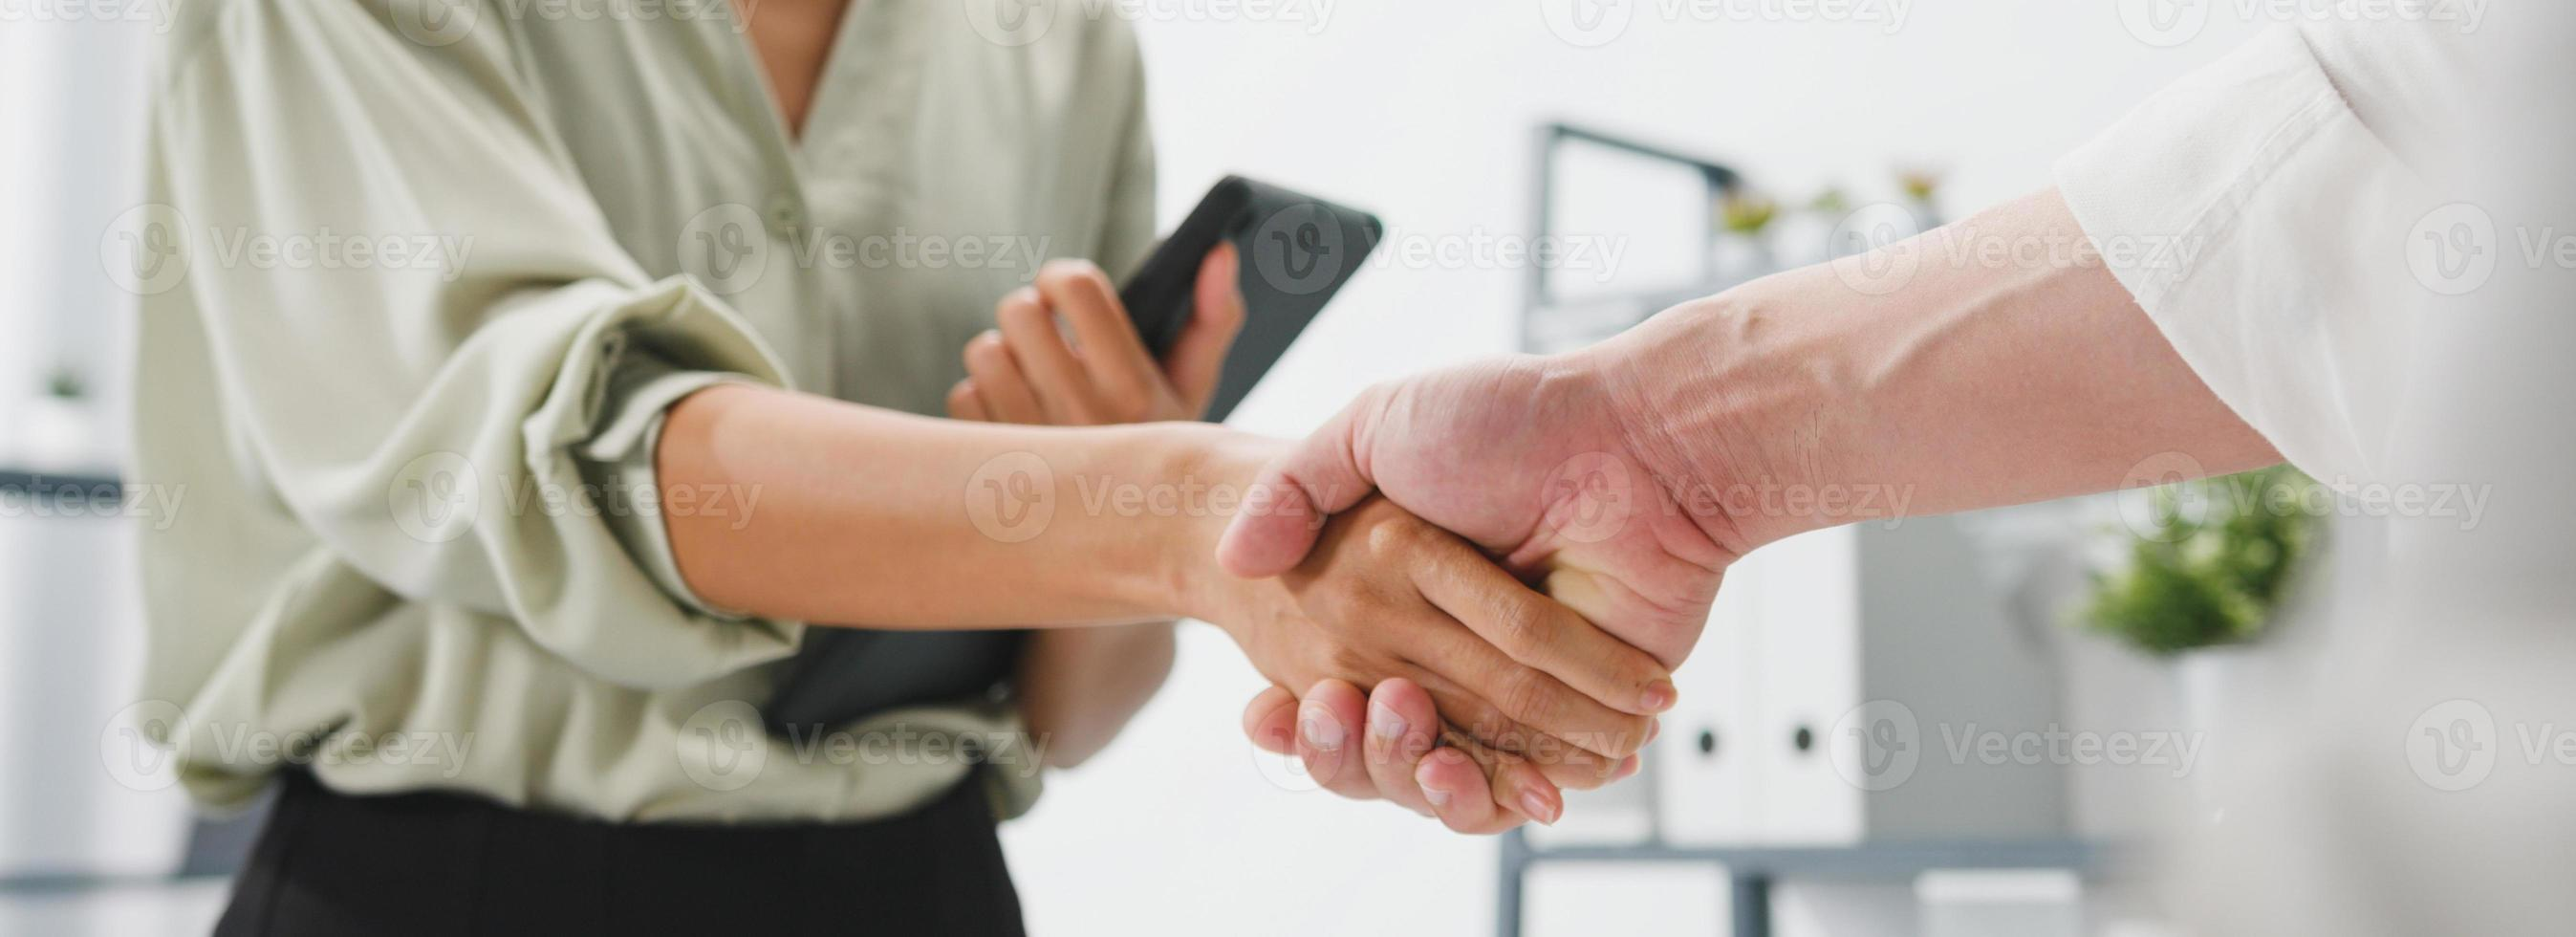 Young creative people in smart casual wear discussing business shaking hands together in office. Partner cooperation, coworker teamwork concept. Panoramic banner background with copy space. photo